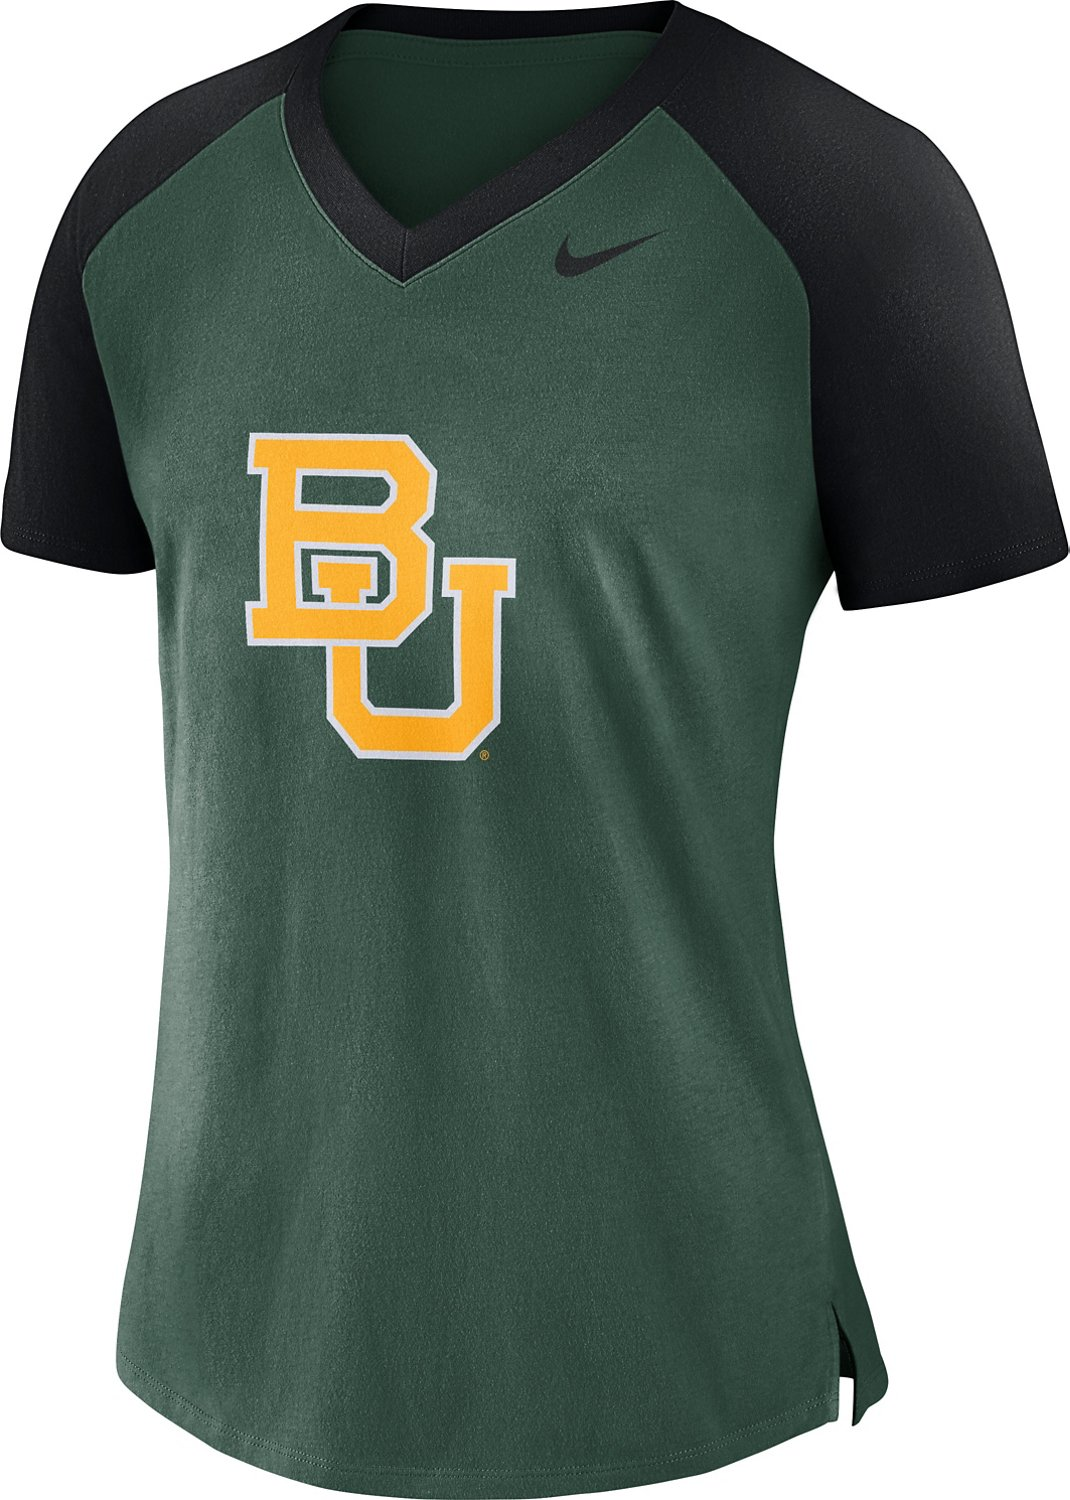 Nike Women's Baylor University Fan V-neck Top